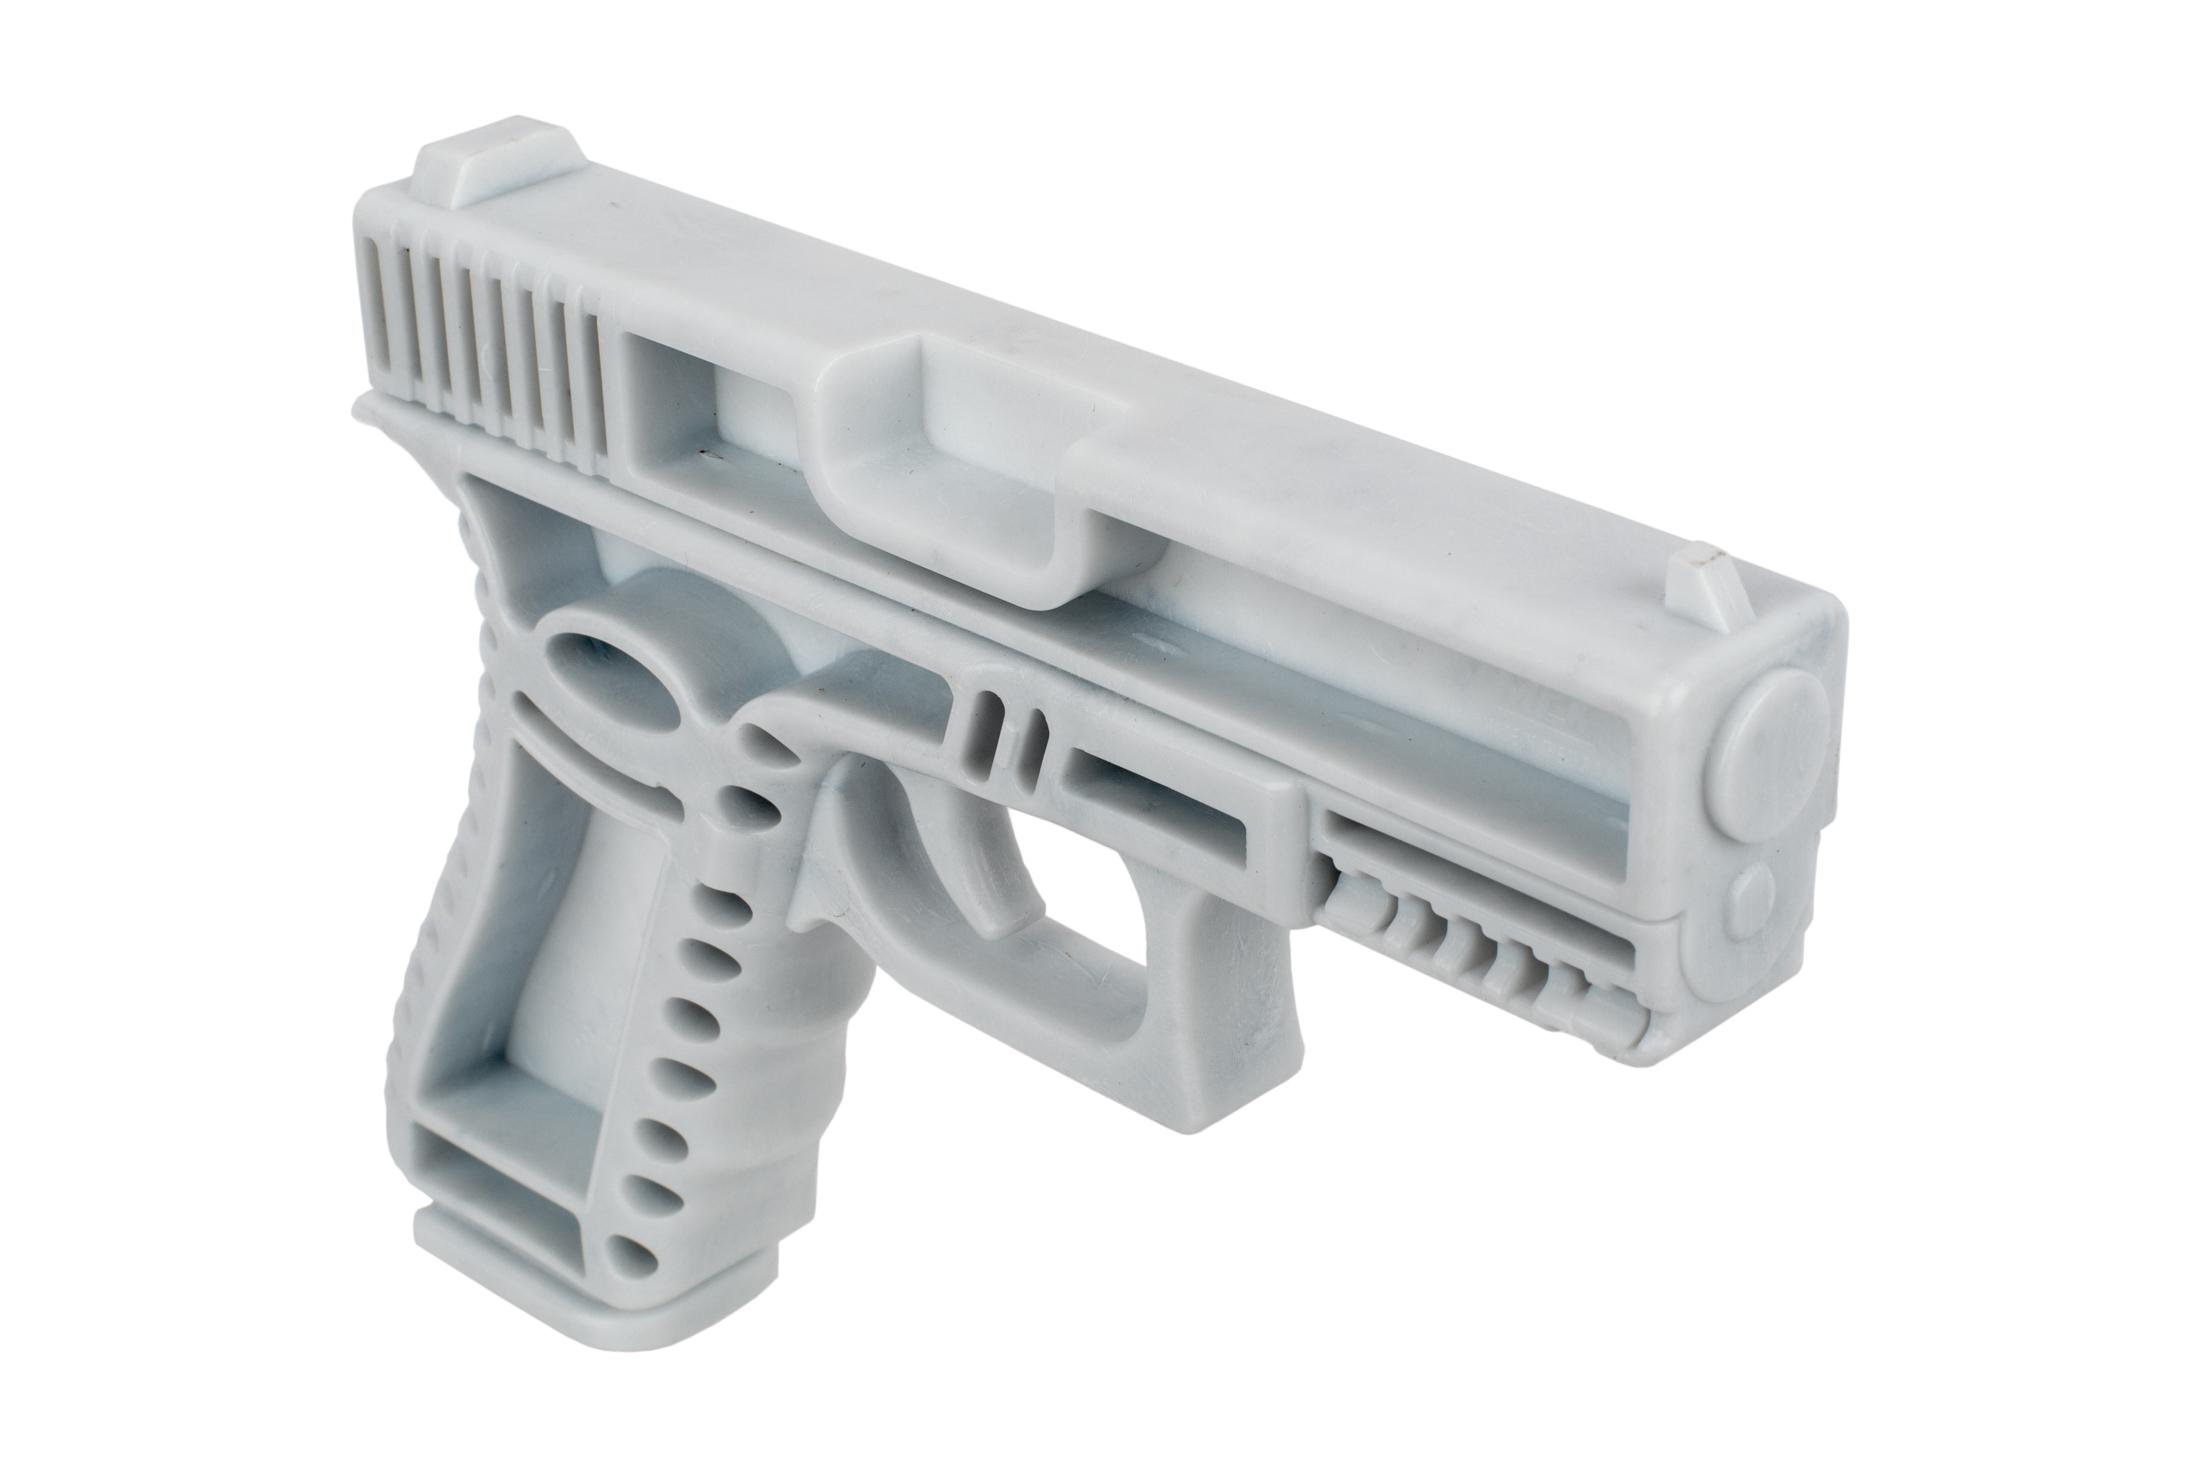 CAA Training Handgun is durable white injection molded plastic to survive harsh training use.